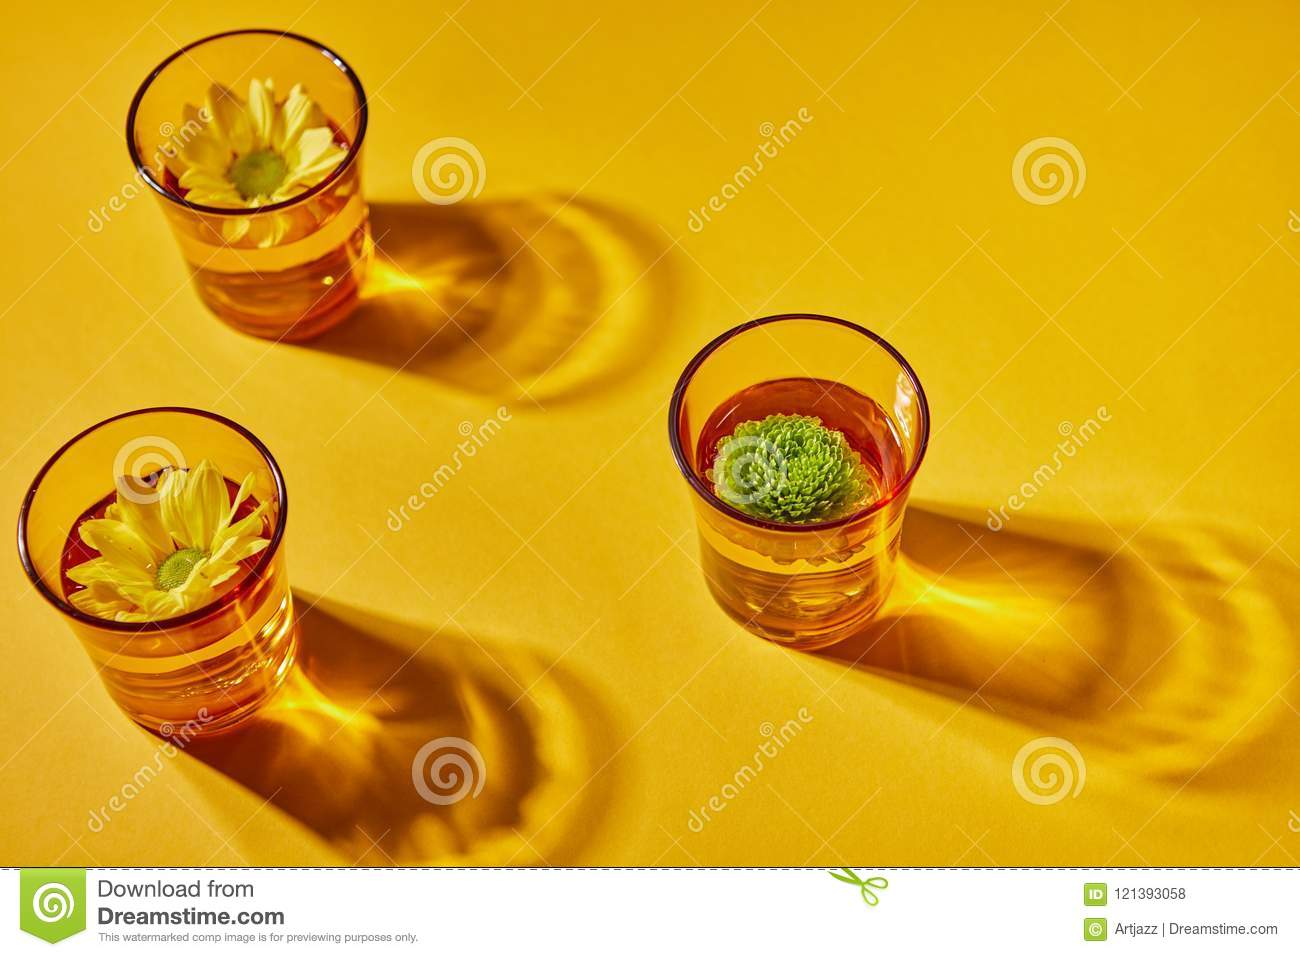 Three glasses of water and flowers on a yellow paper background with shadow